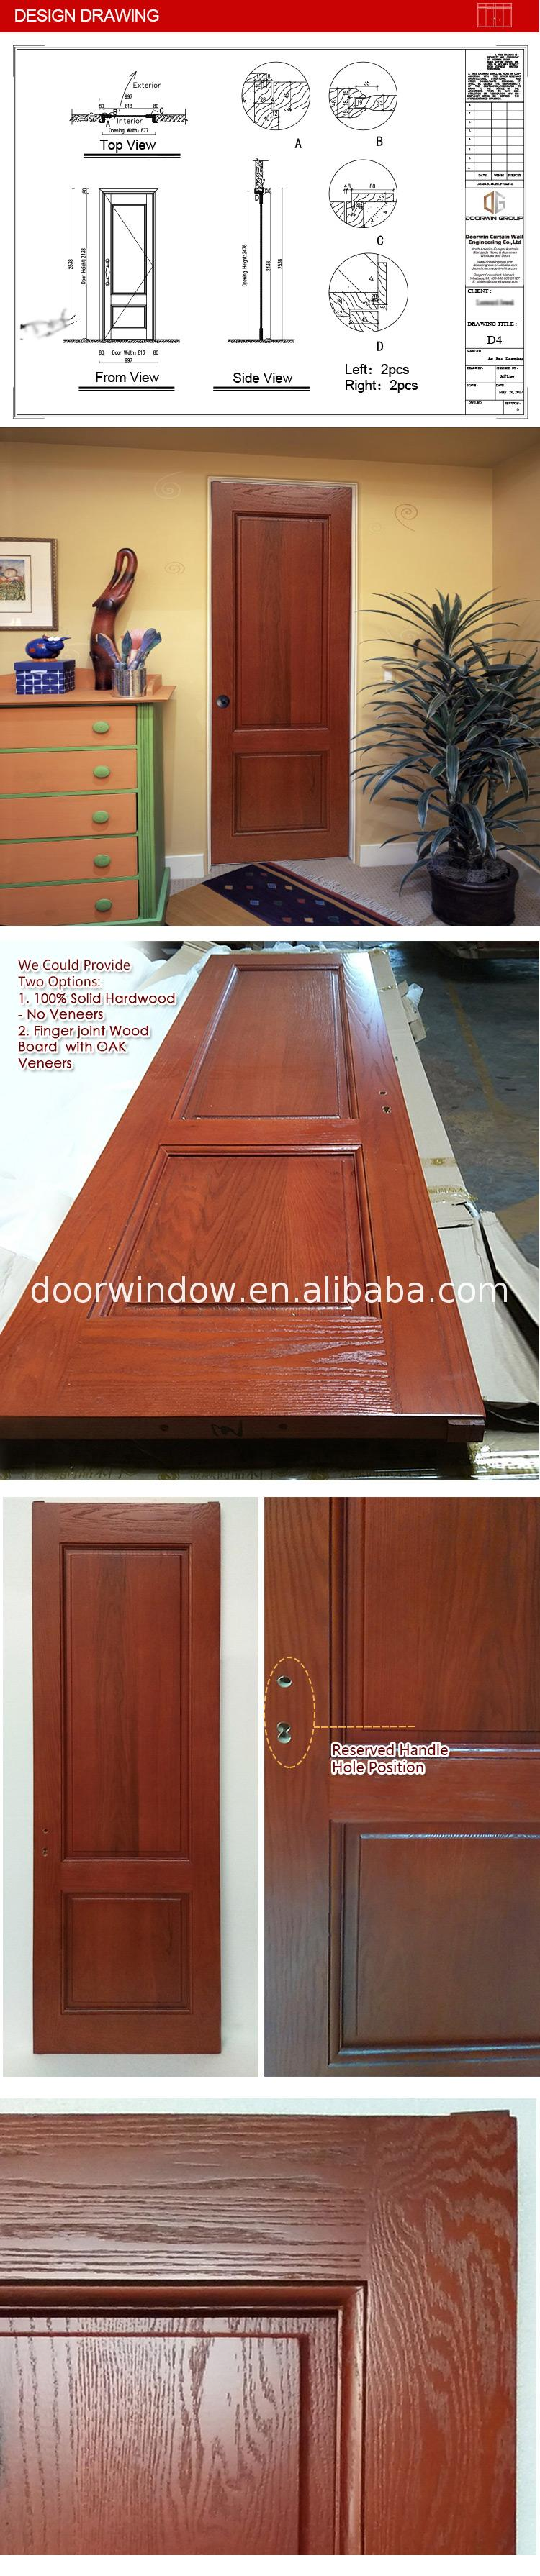 Wooden sash profiles for doors and windows arc interiors wood entry image